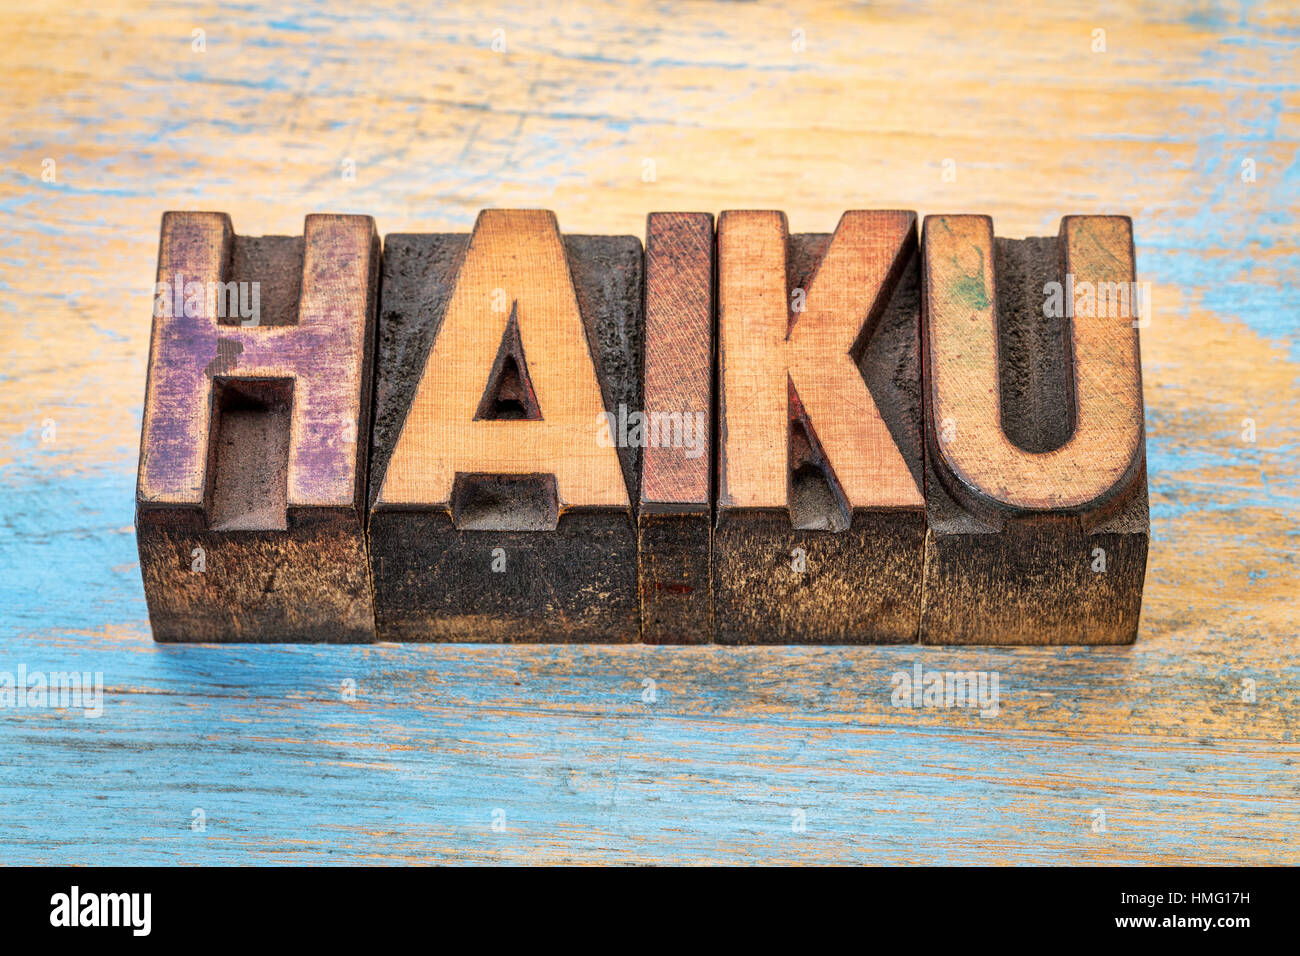 haiku a very short form of japanese poetry word abstract in